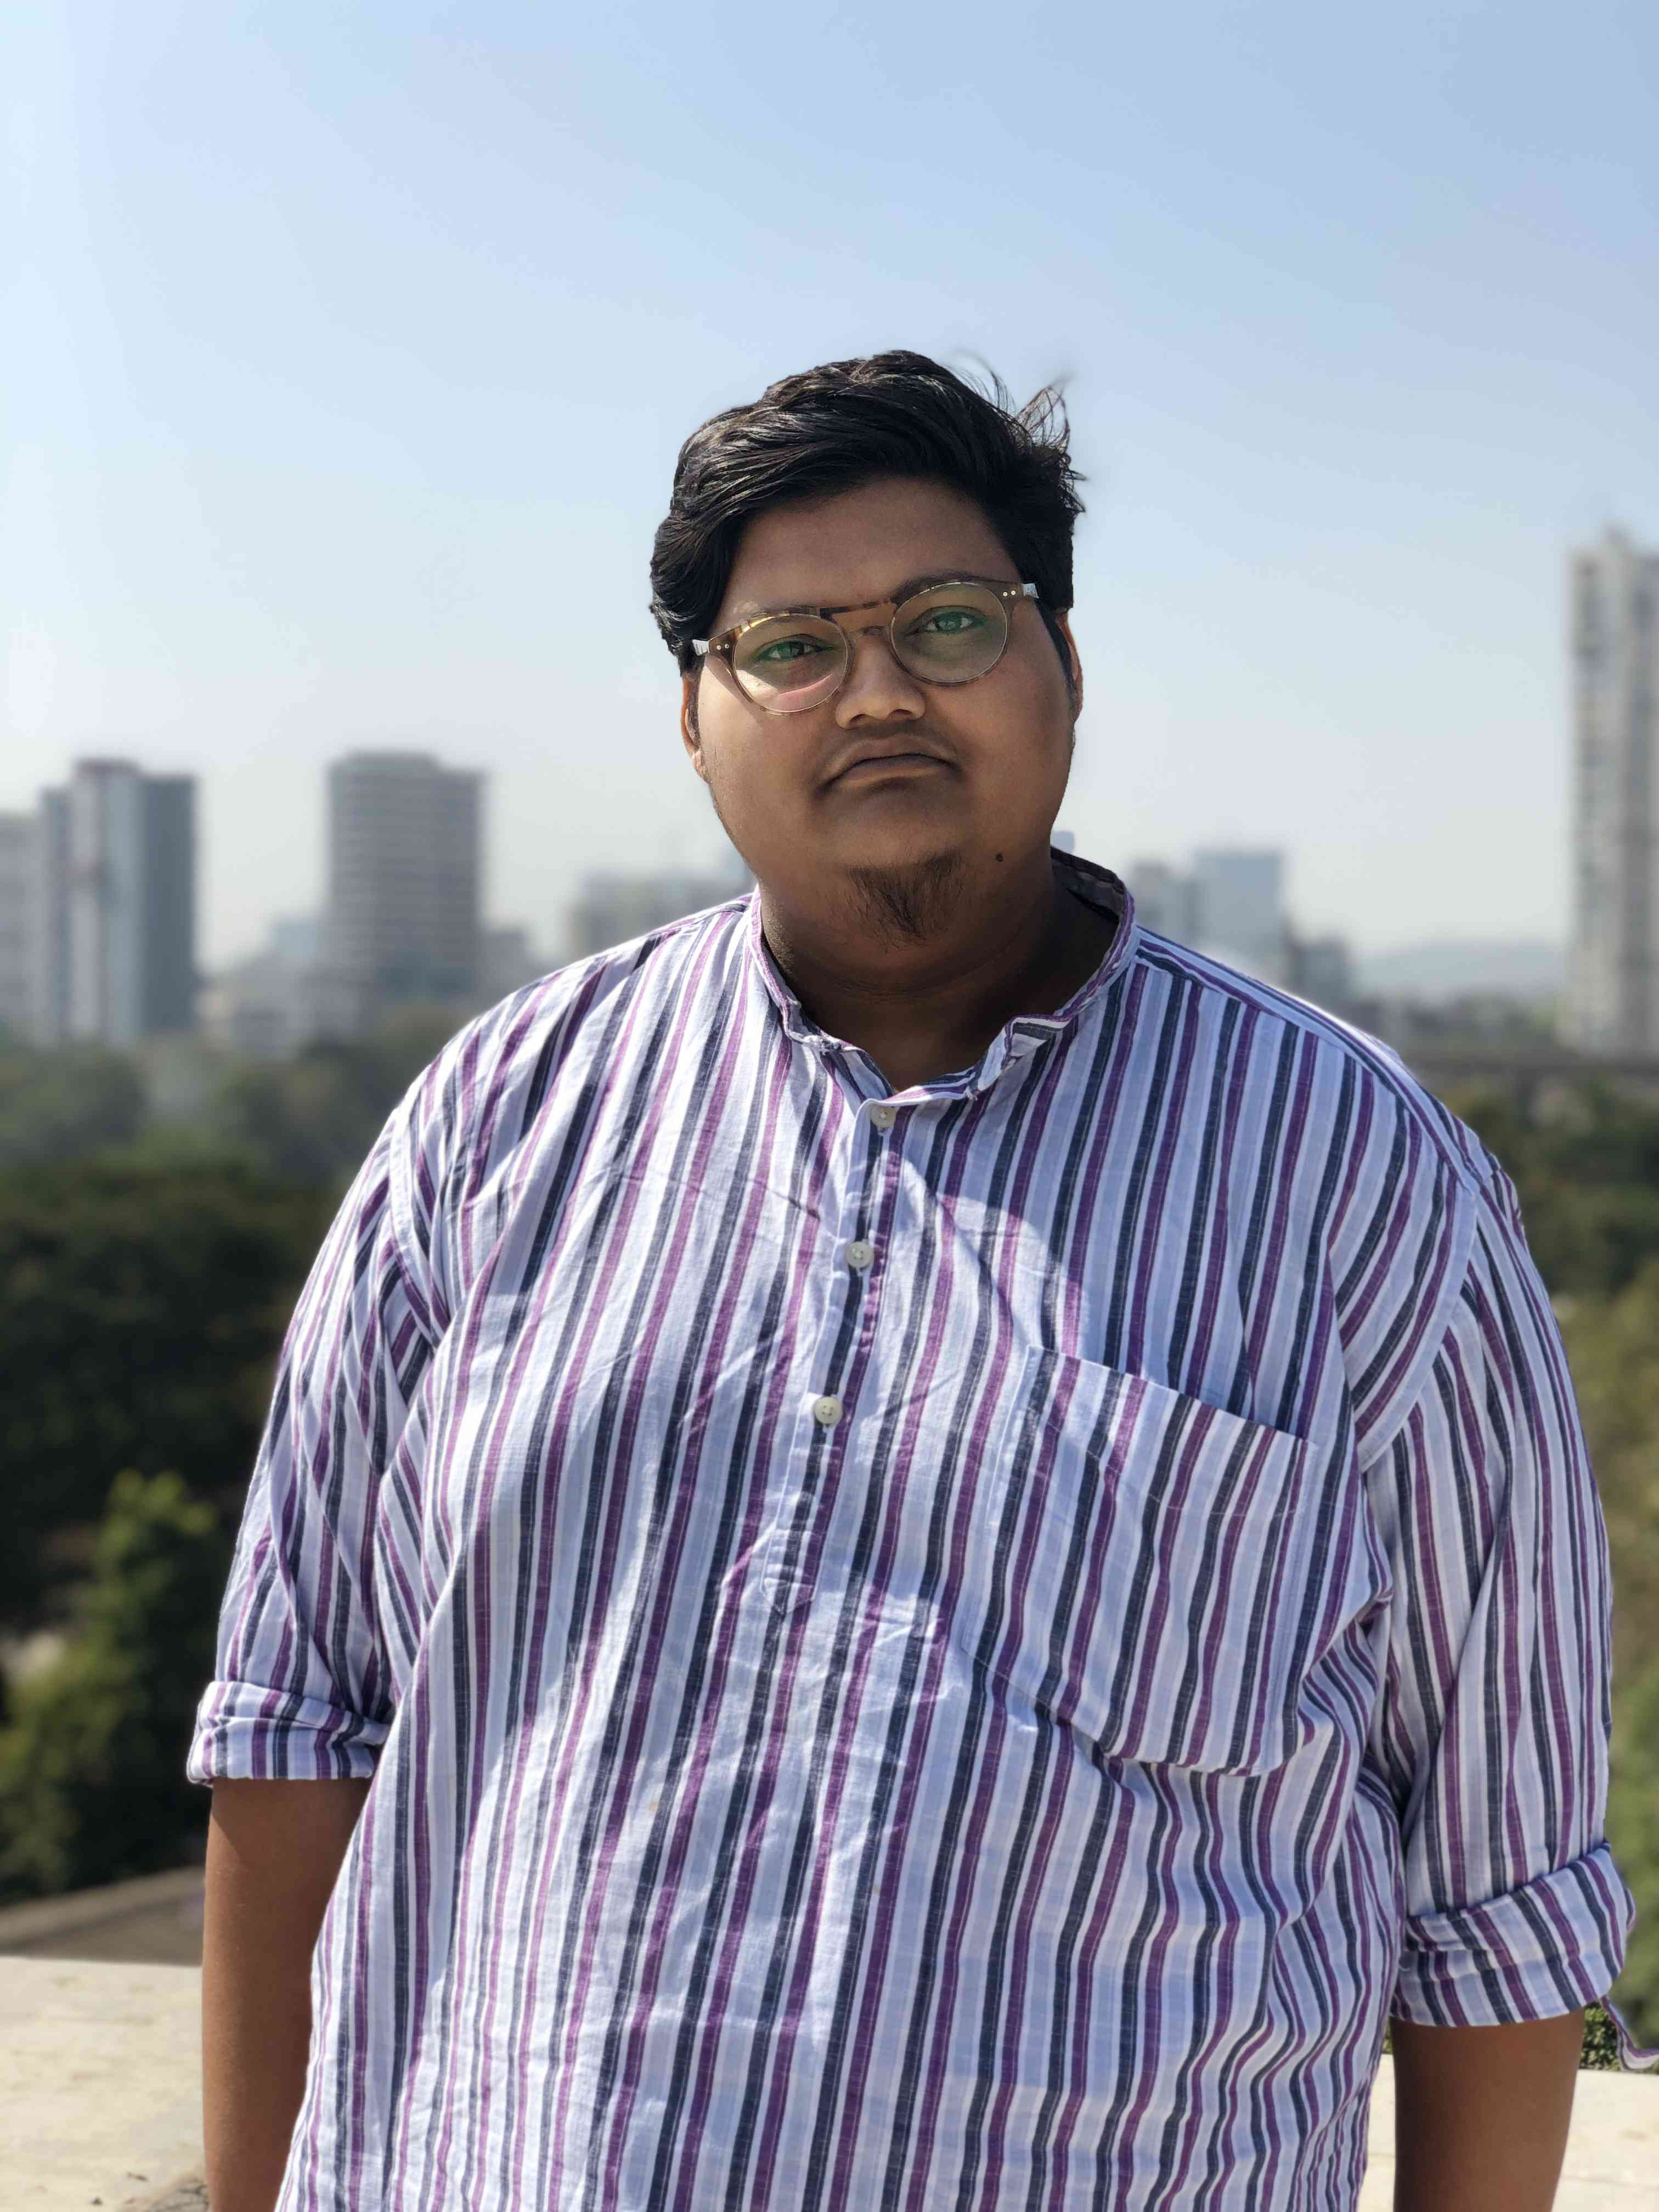 Nikhil Pandey 6 young Indian men and women share stories of social media anxiety and mental health problems